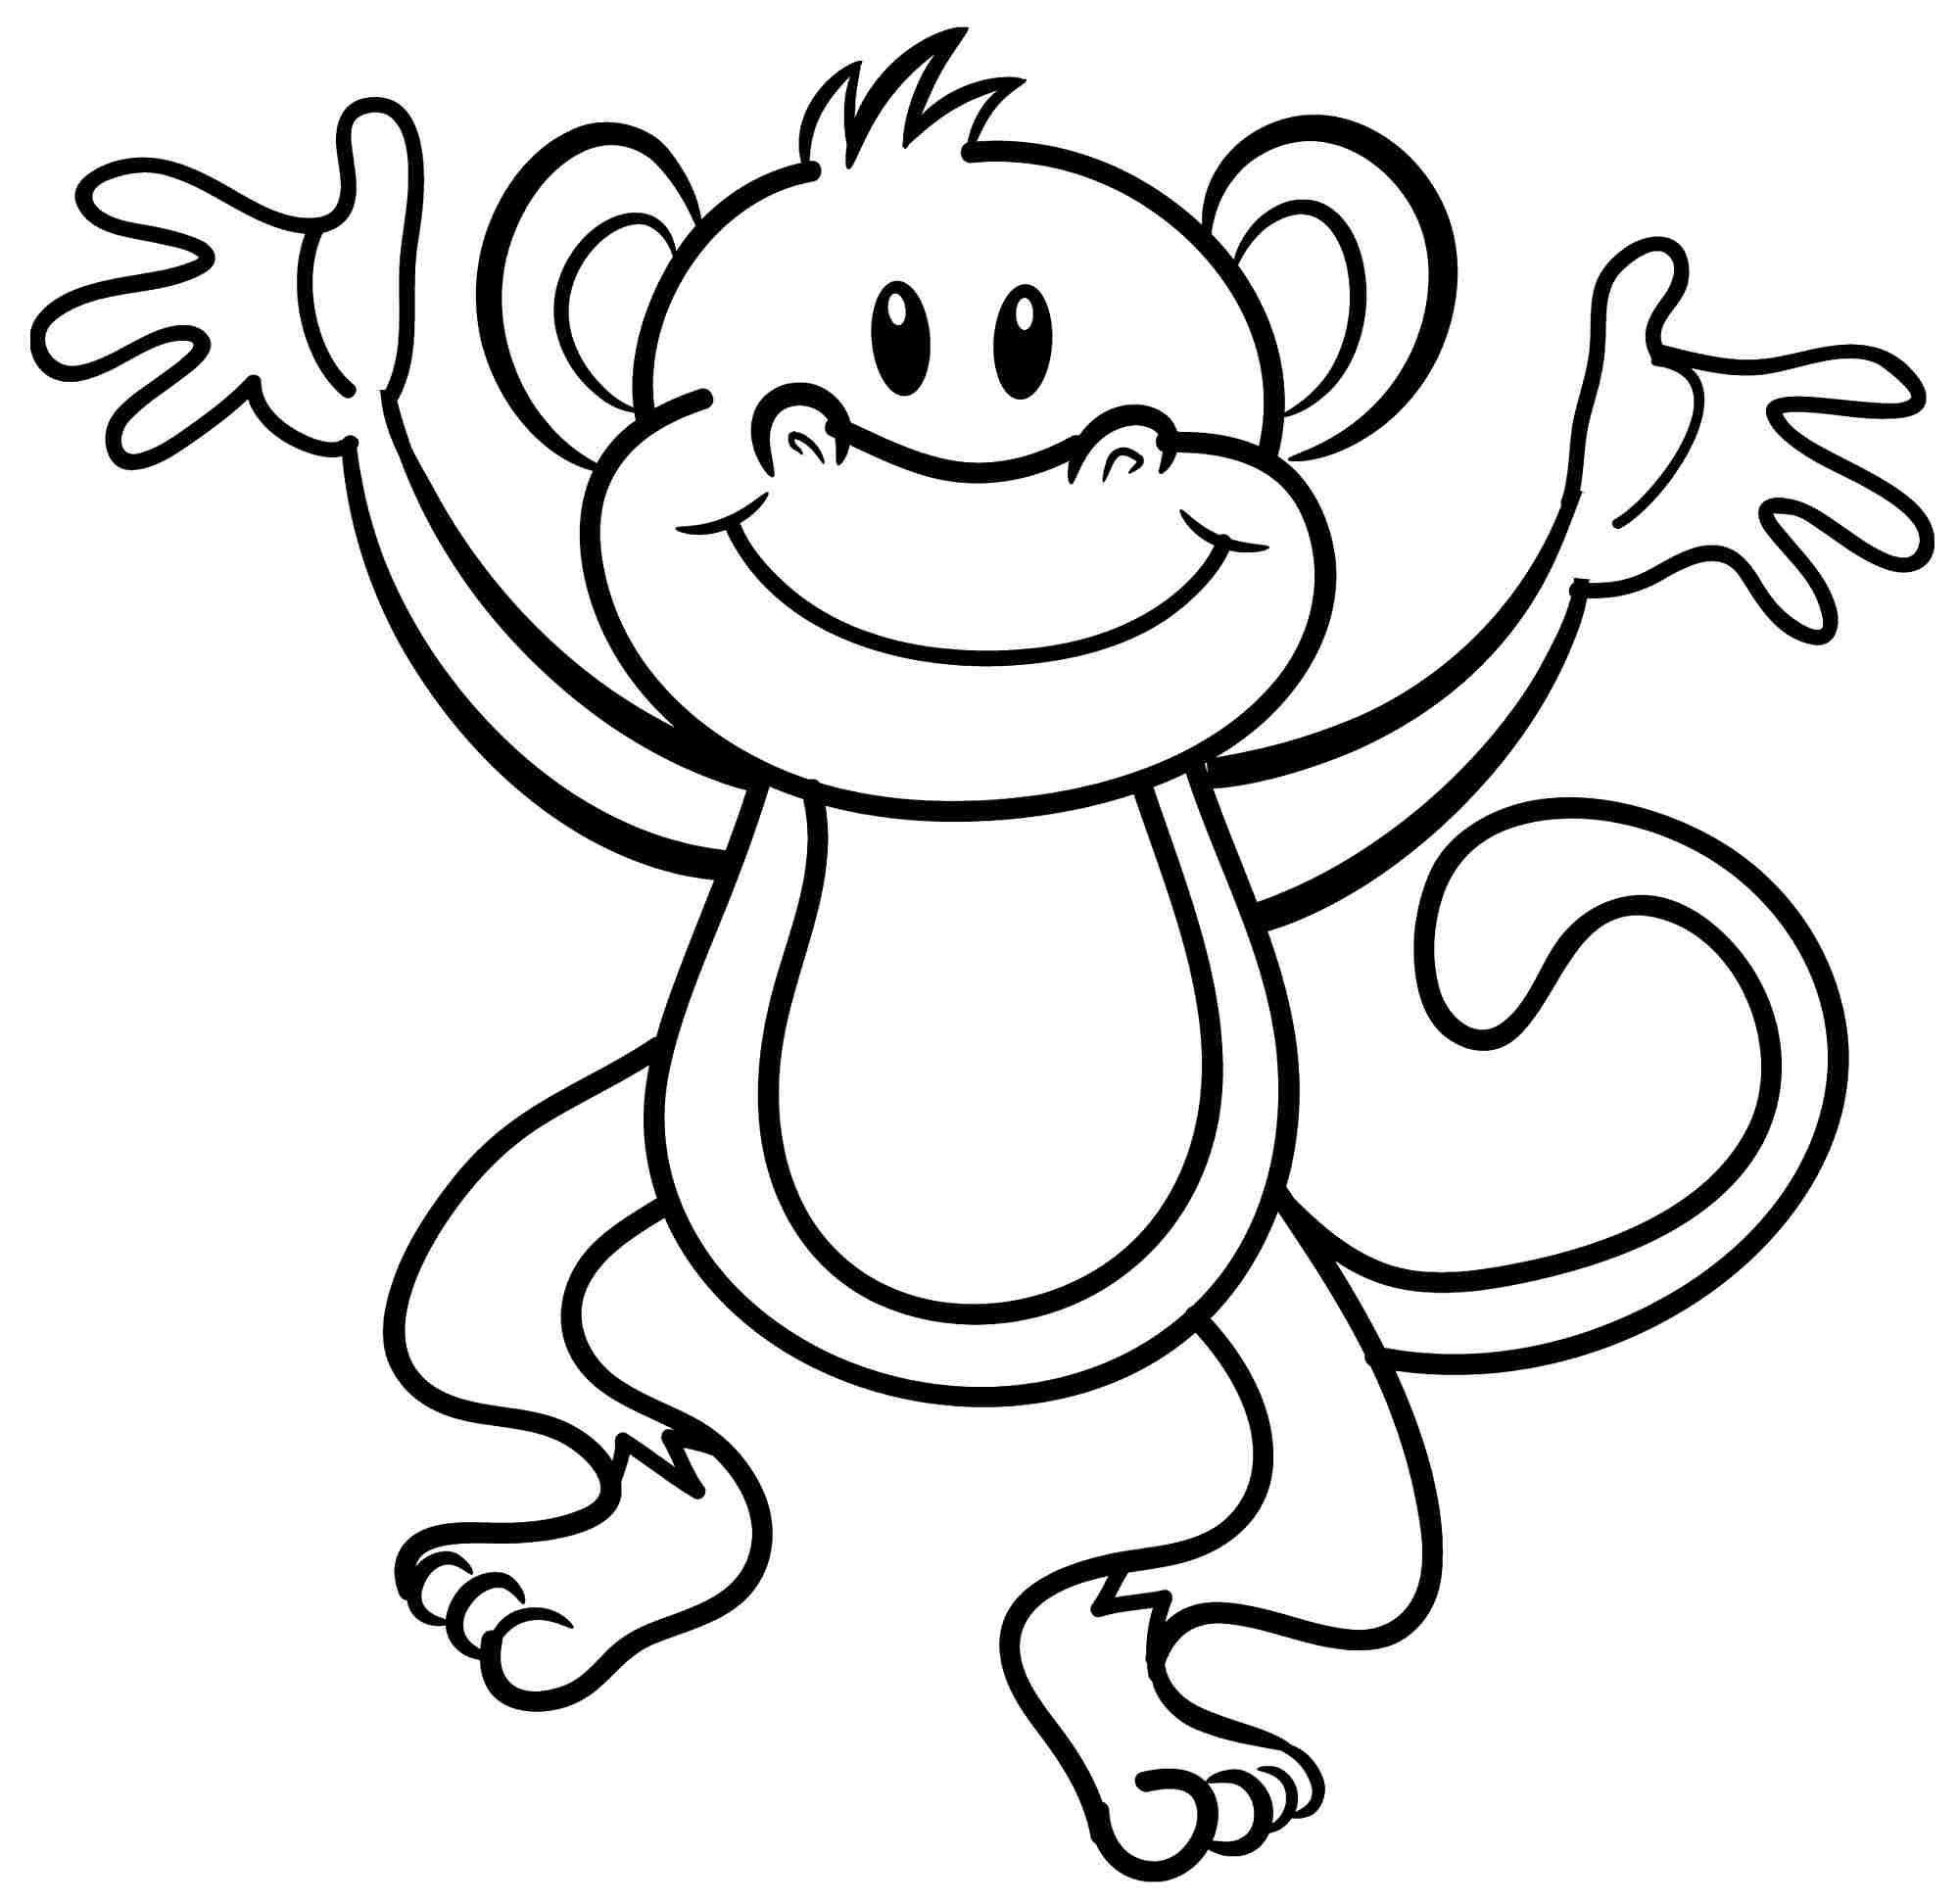 75 Coloring Pages Monkey Download Free Images